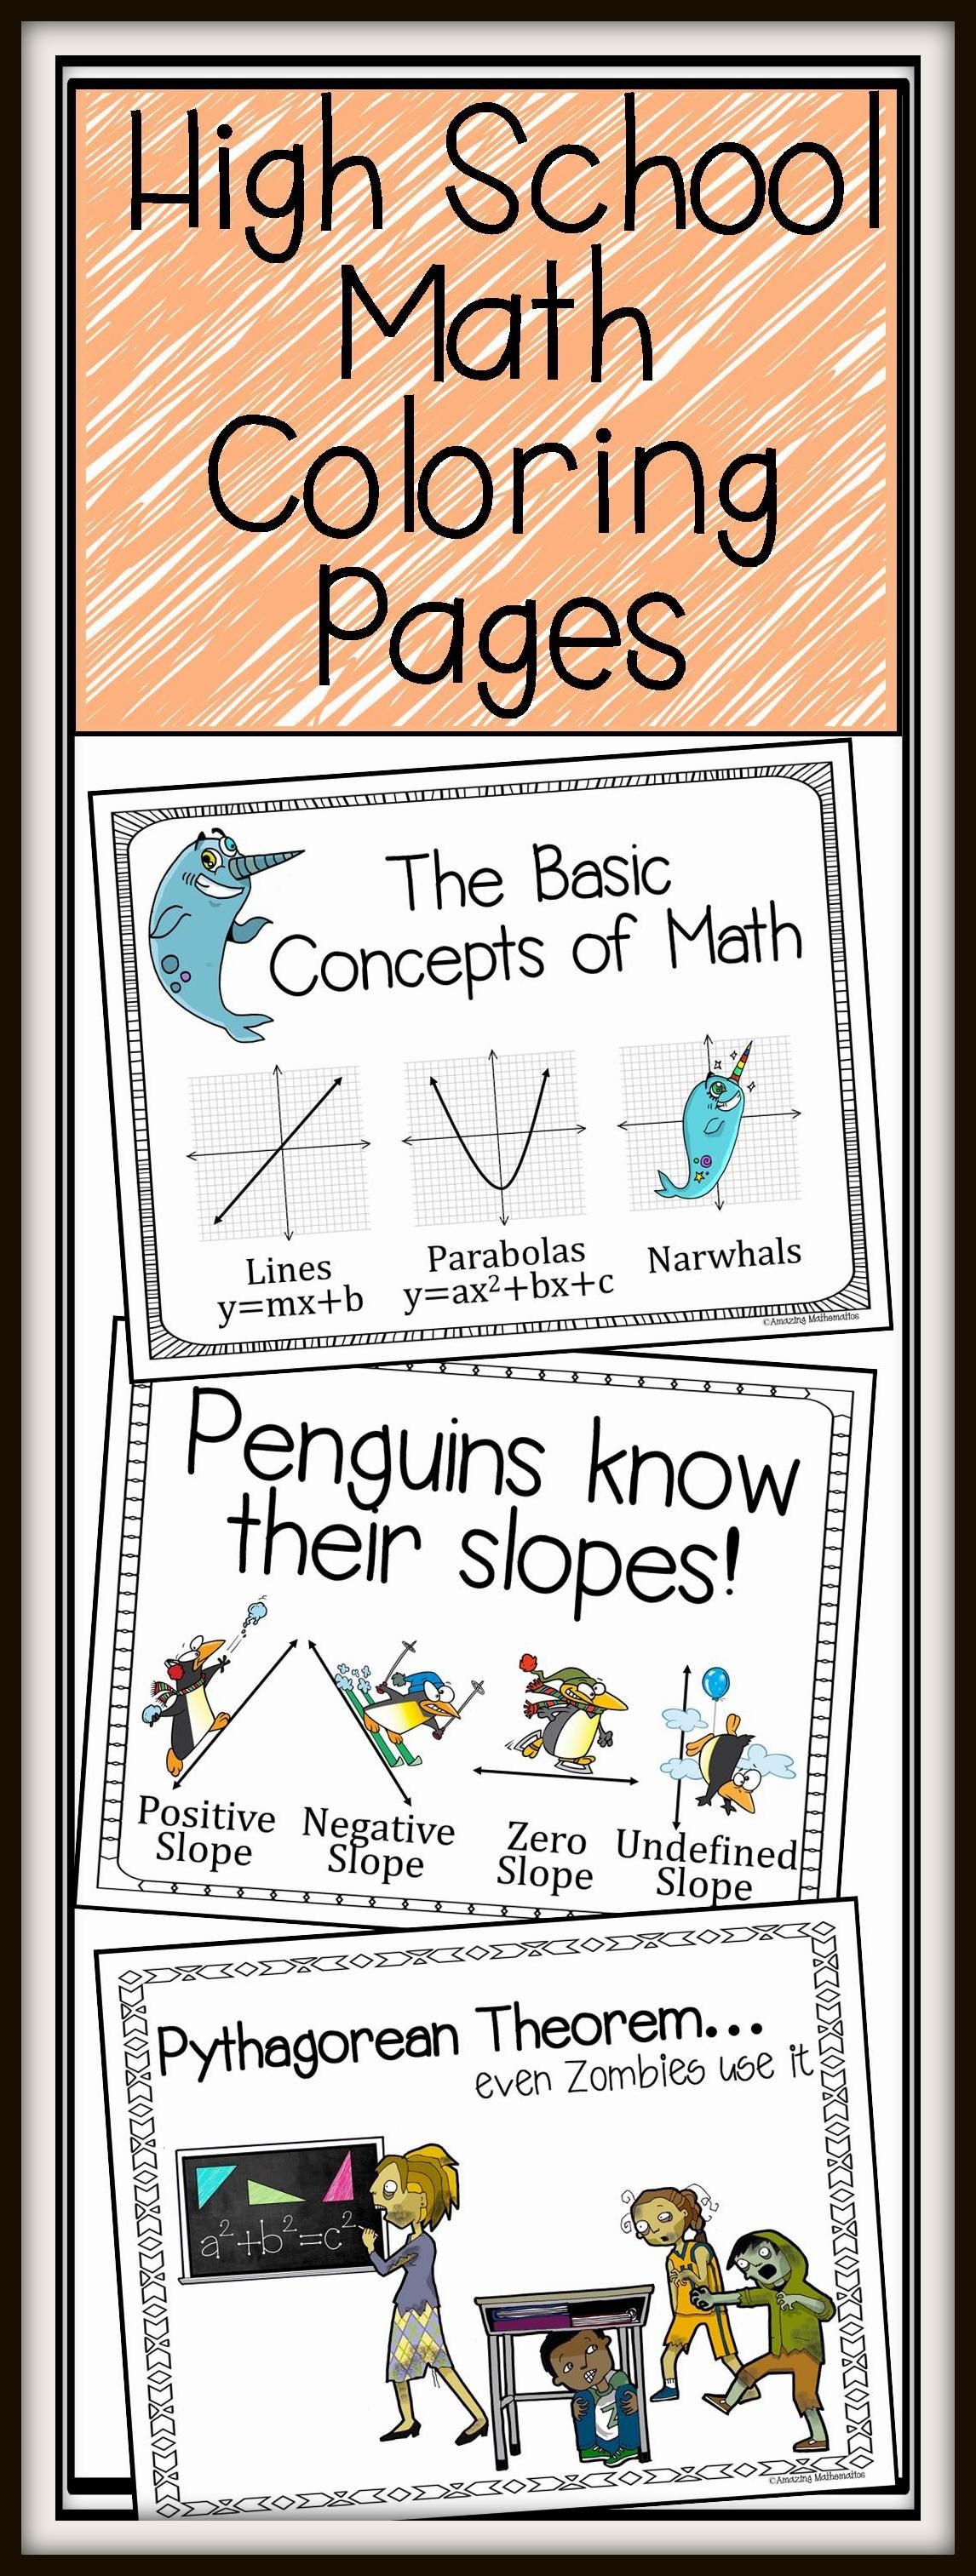 Coloring Pages - High School Math | Pinterest | Math, Algebra and School